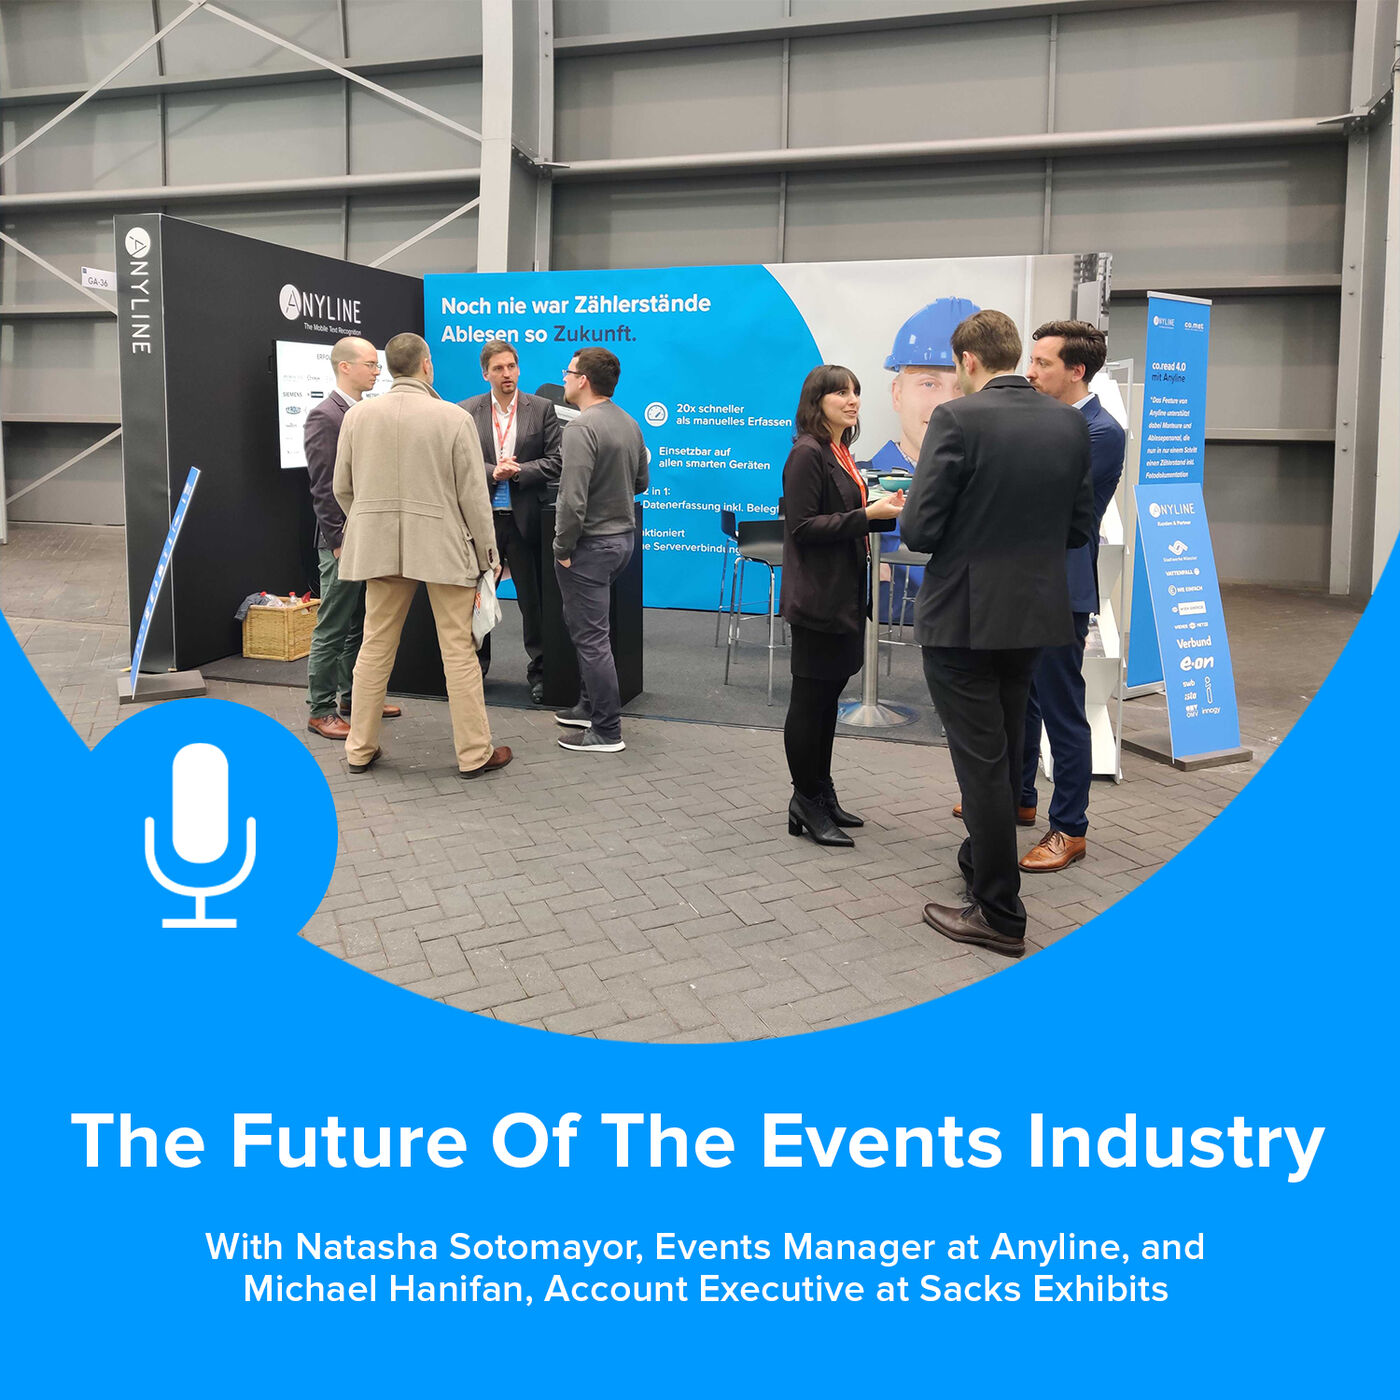 The Future Of The Events Industry // Anyline, Anytime